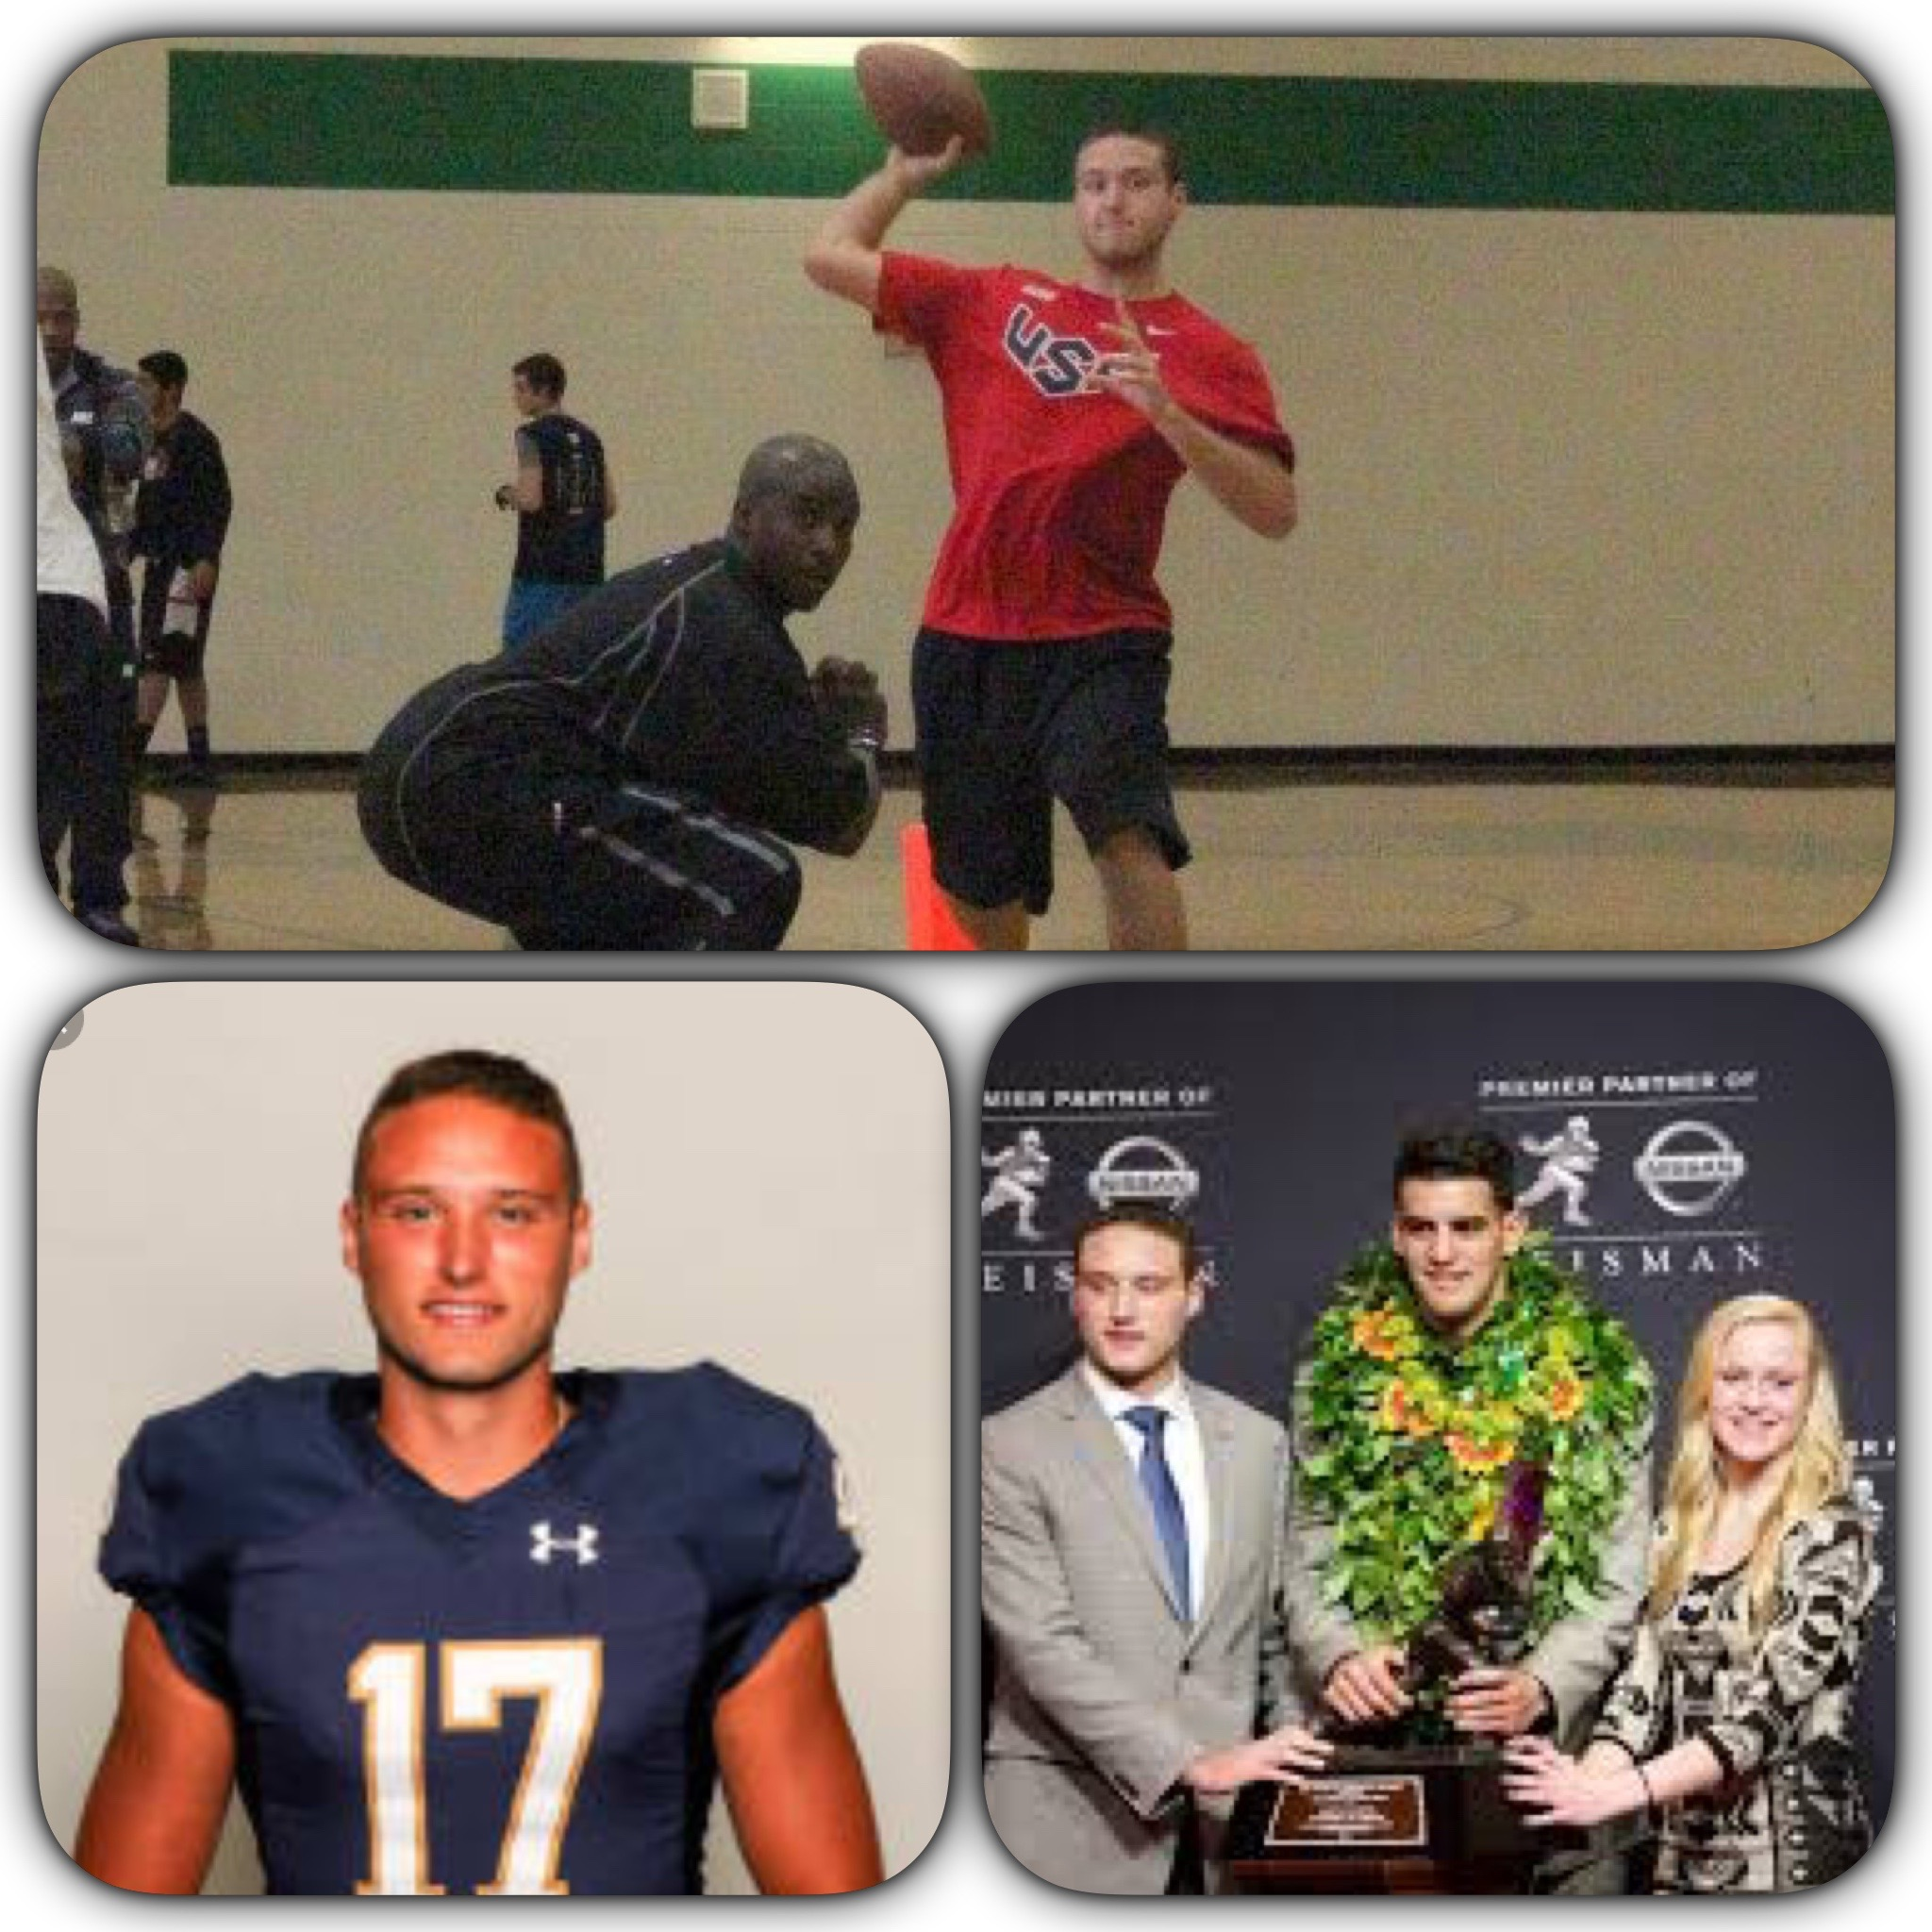 NOLAN HENRY- UNION HS (HIGH SCHOOL HEISMAN) - NOTRE DAME